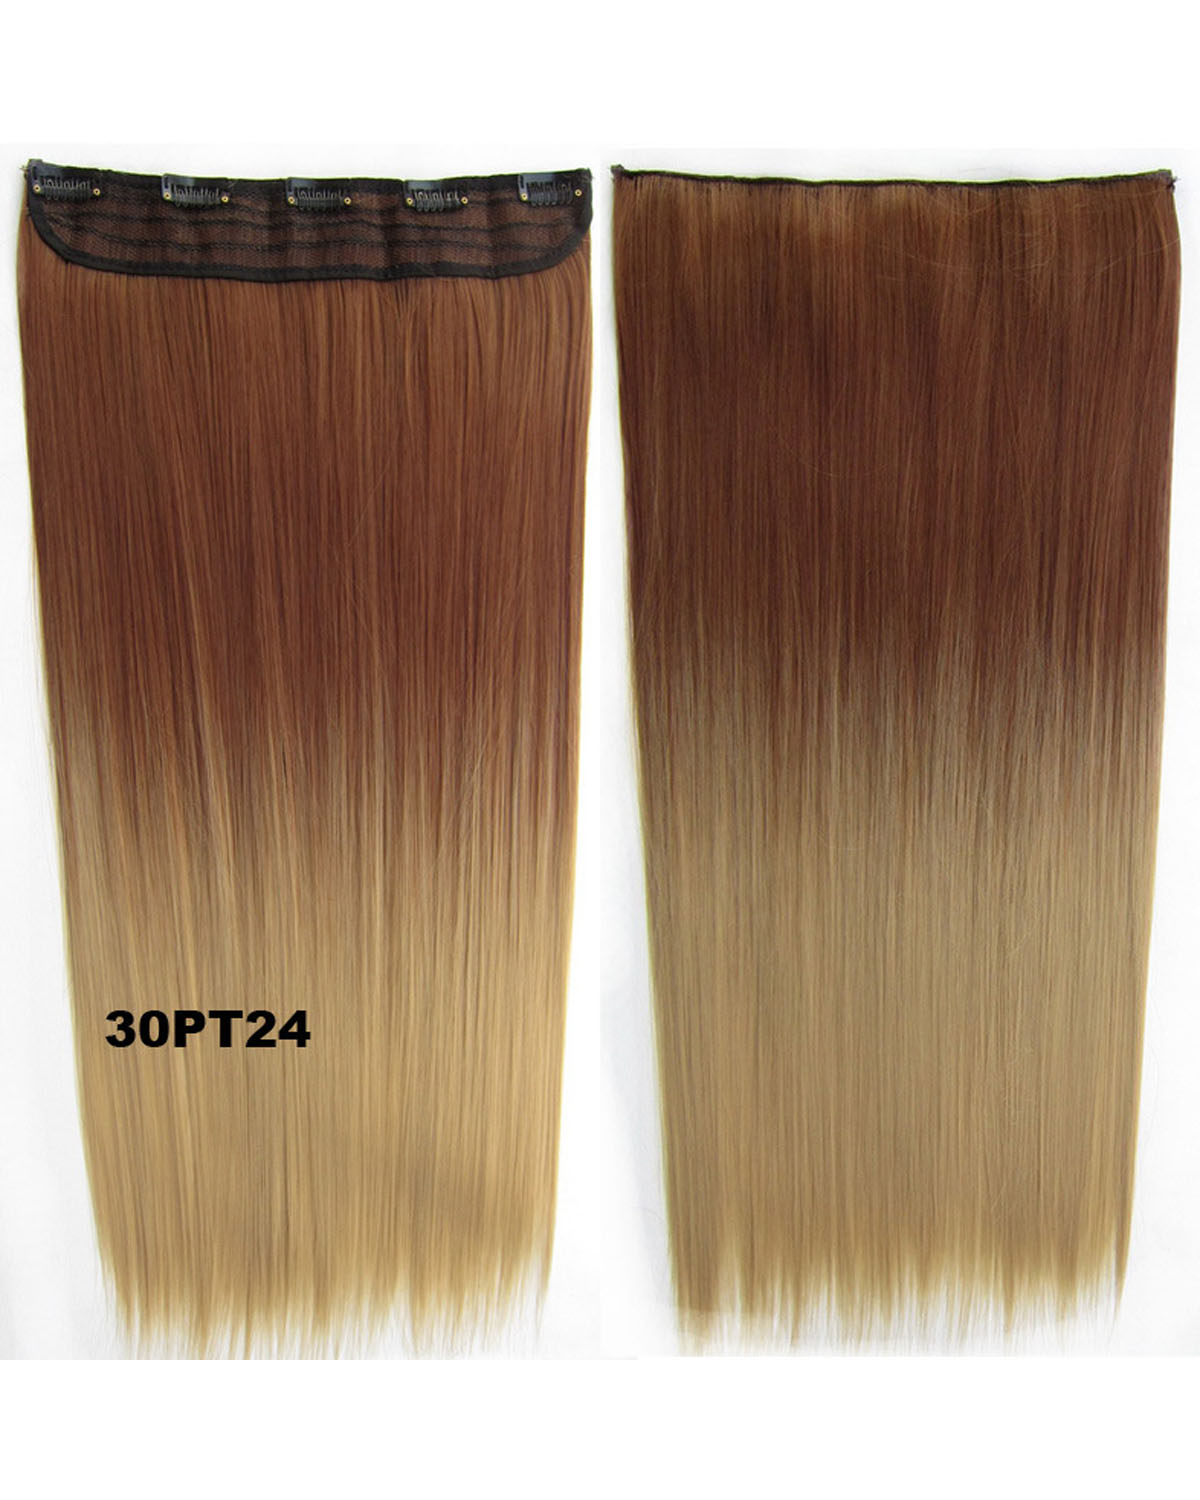 24 Inch Female Convenient Long Straight One Piece 5 Clips Clip in Synthetic Hair Extension Ombre BlackT27GS-666 30PT24